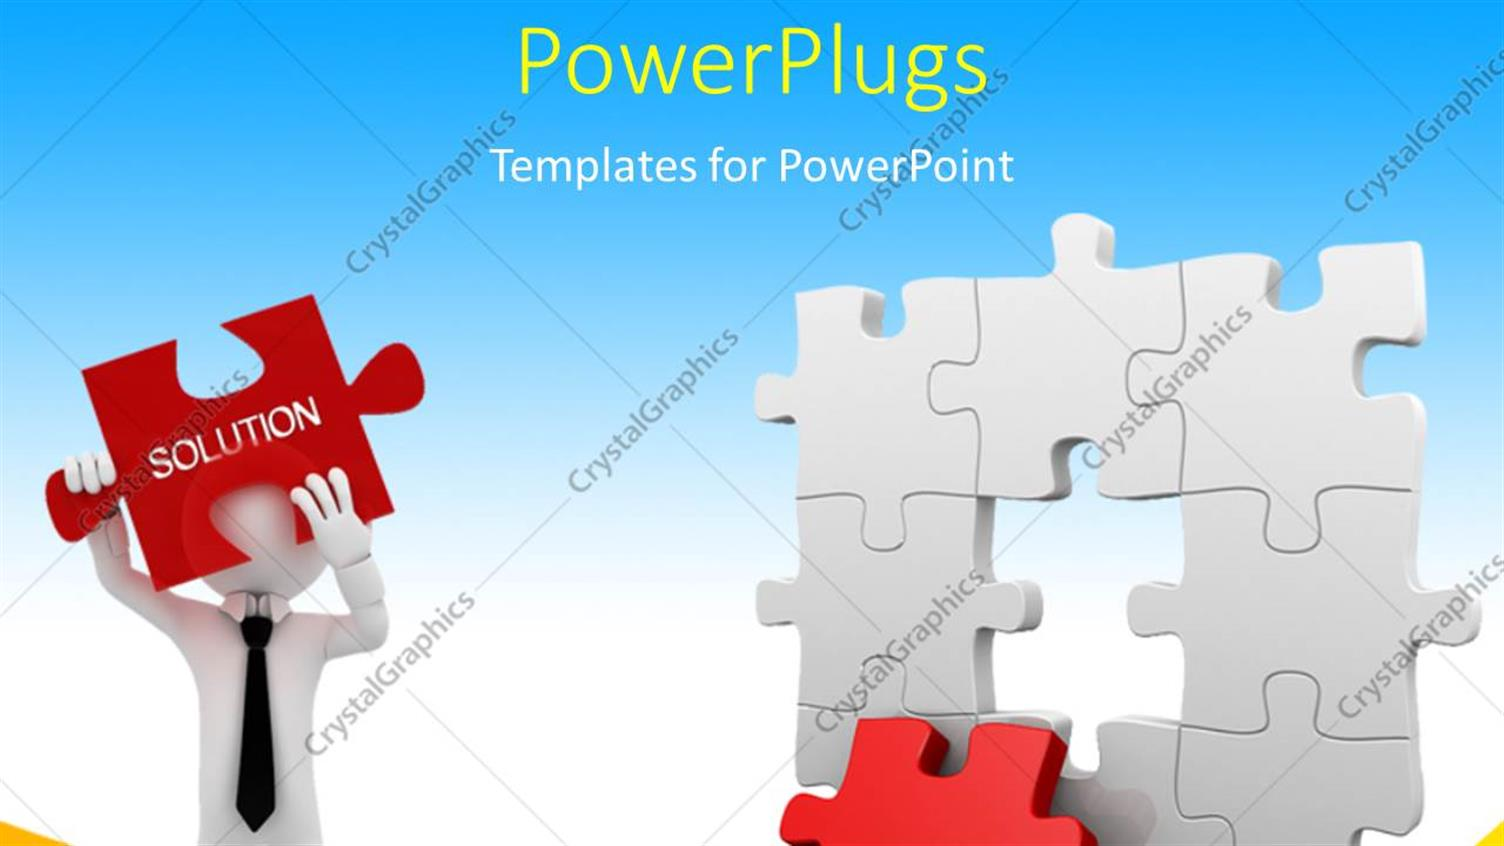 PowerPoint Template Displaying Business Man Trying to Find Missing Piece of Puzzle to Join the 3D Jigsaw